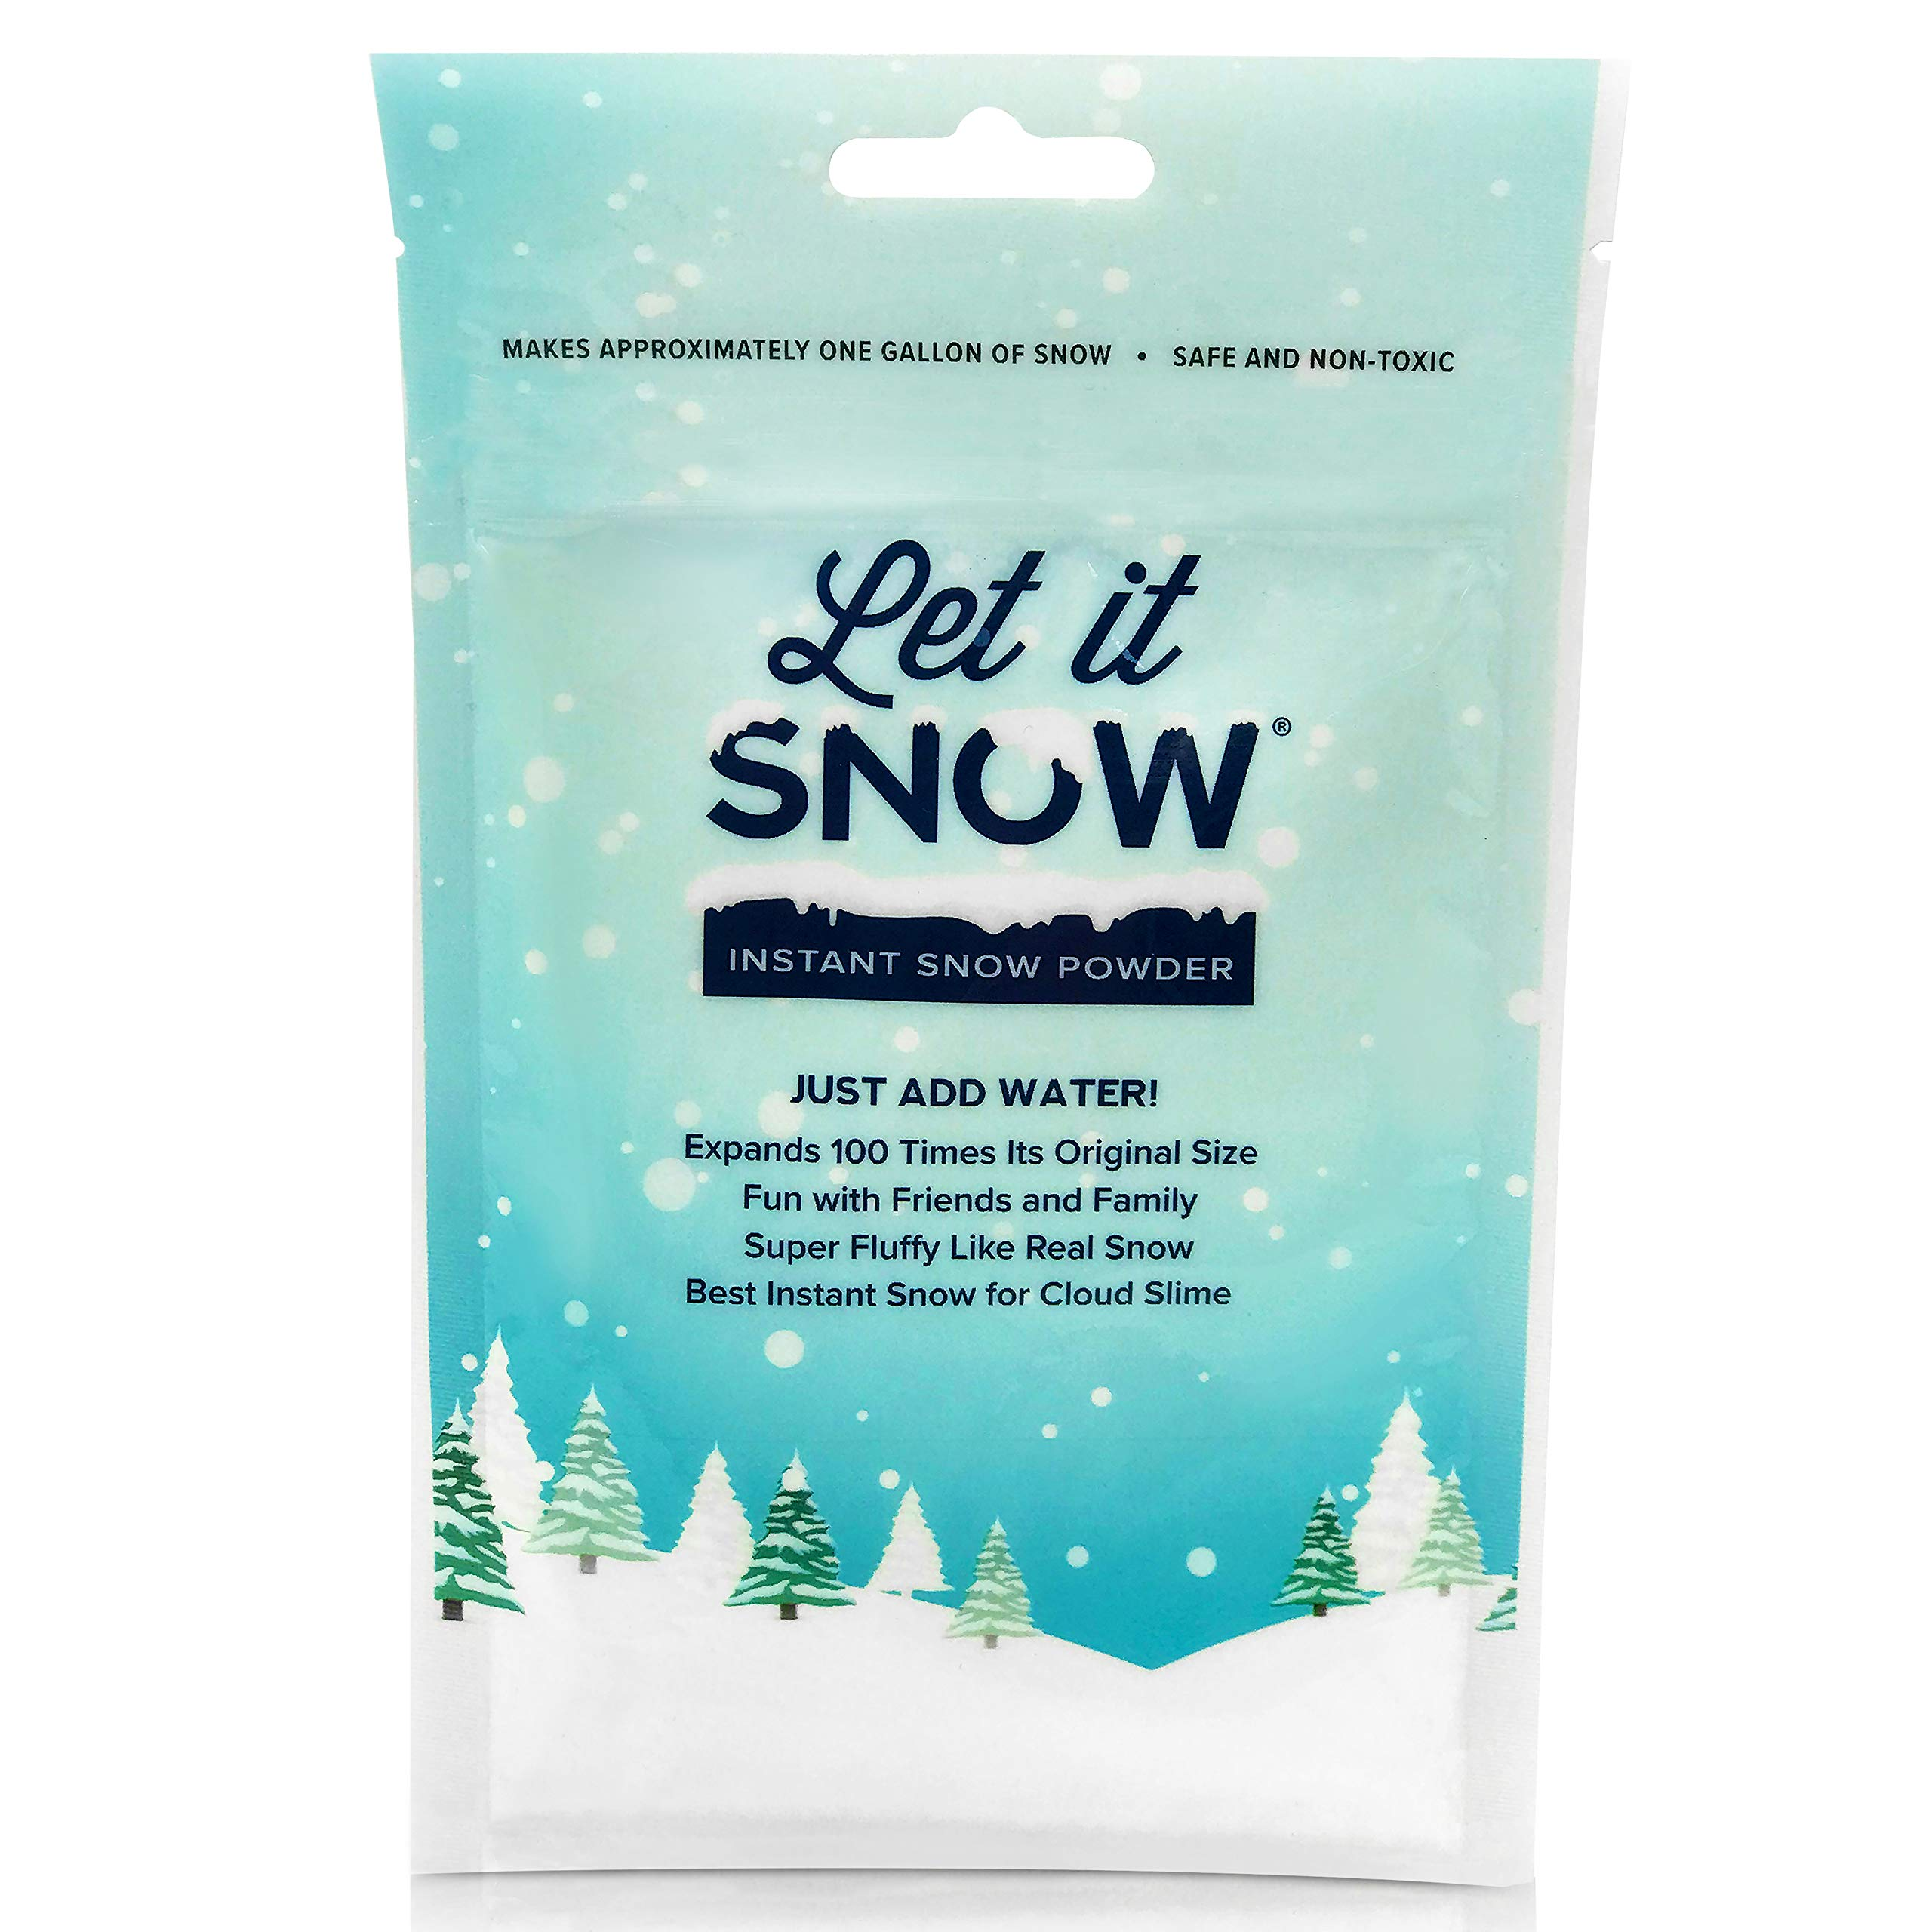 Let it Snow Instant Snow Powder (4 Gallons) and Elmer's Glue (1 Gallon) - Mix Makes Magical Fluffy White Artificial Snow - Perfect for Cloud Slime! Frozen Theme Birthday Parties and Snow Decorations! by Let it Snow (Image #1)